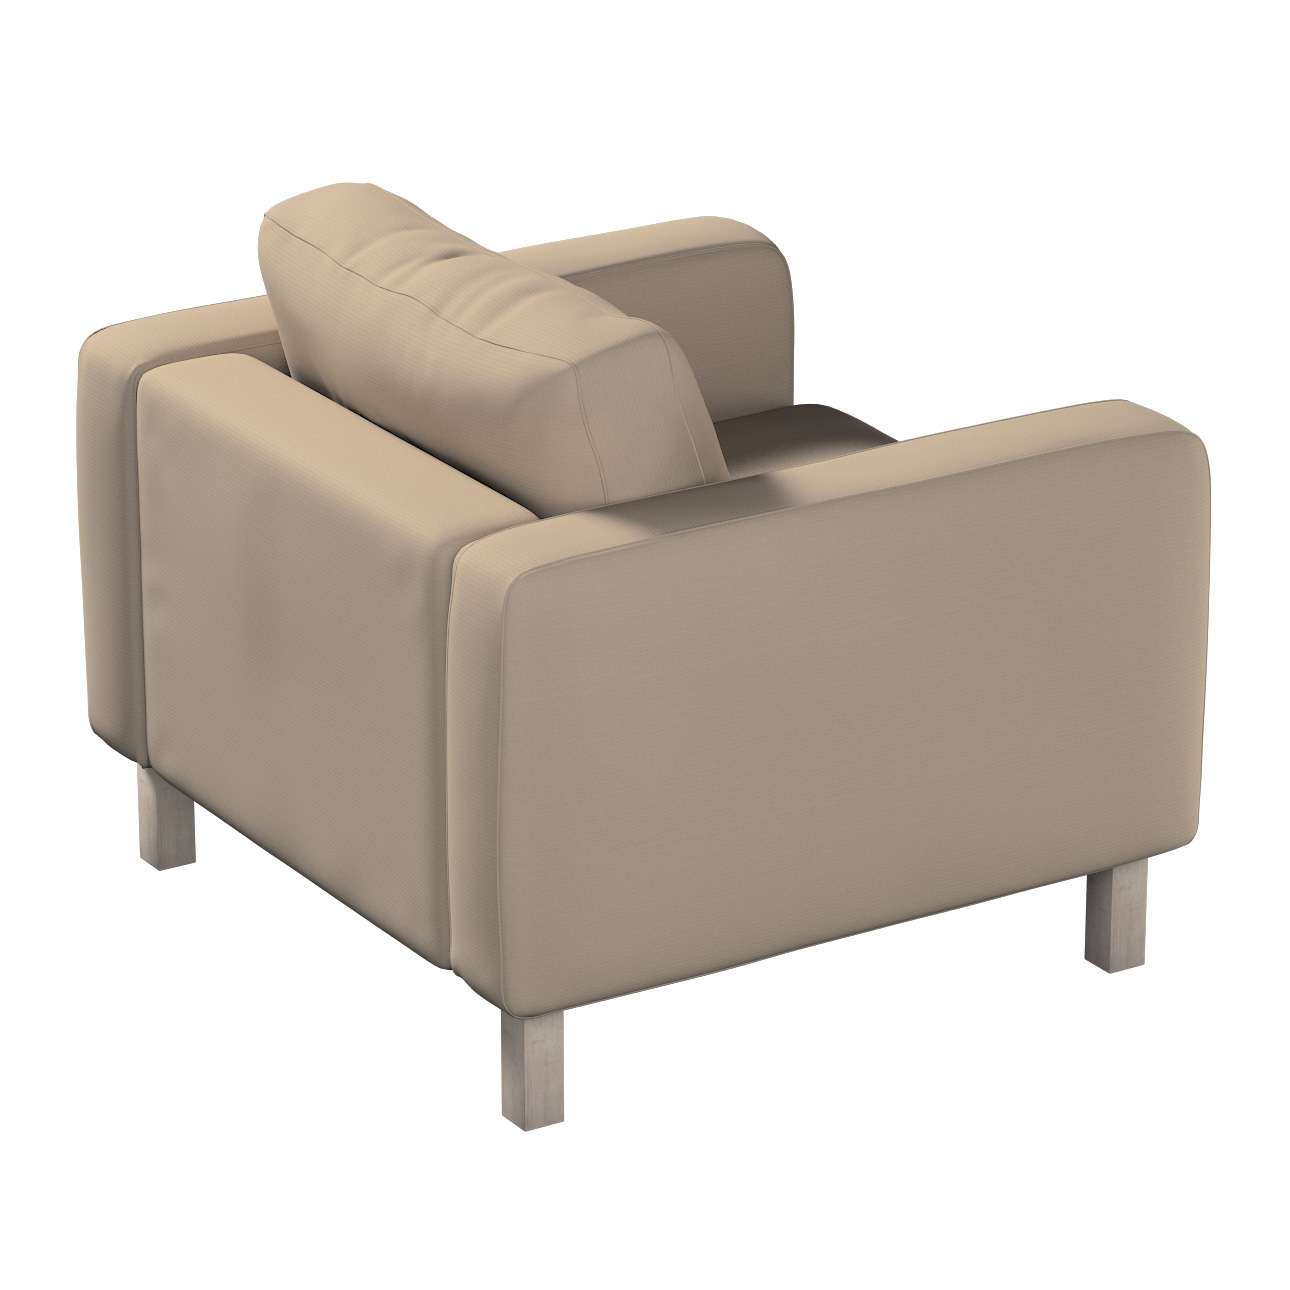 Karlstad armchair cover in collection Panama Cotton, fabric: 702-28